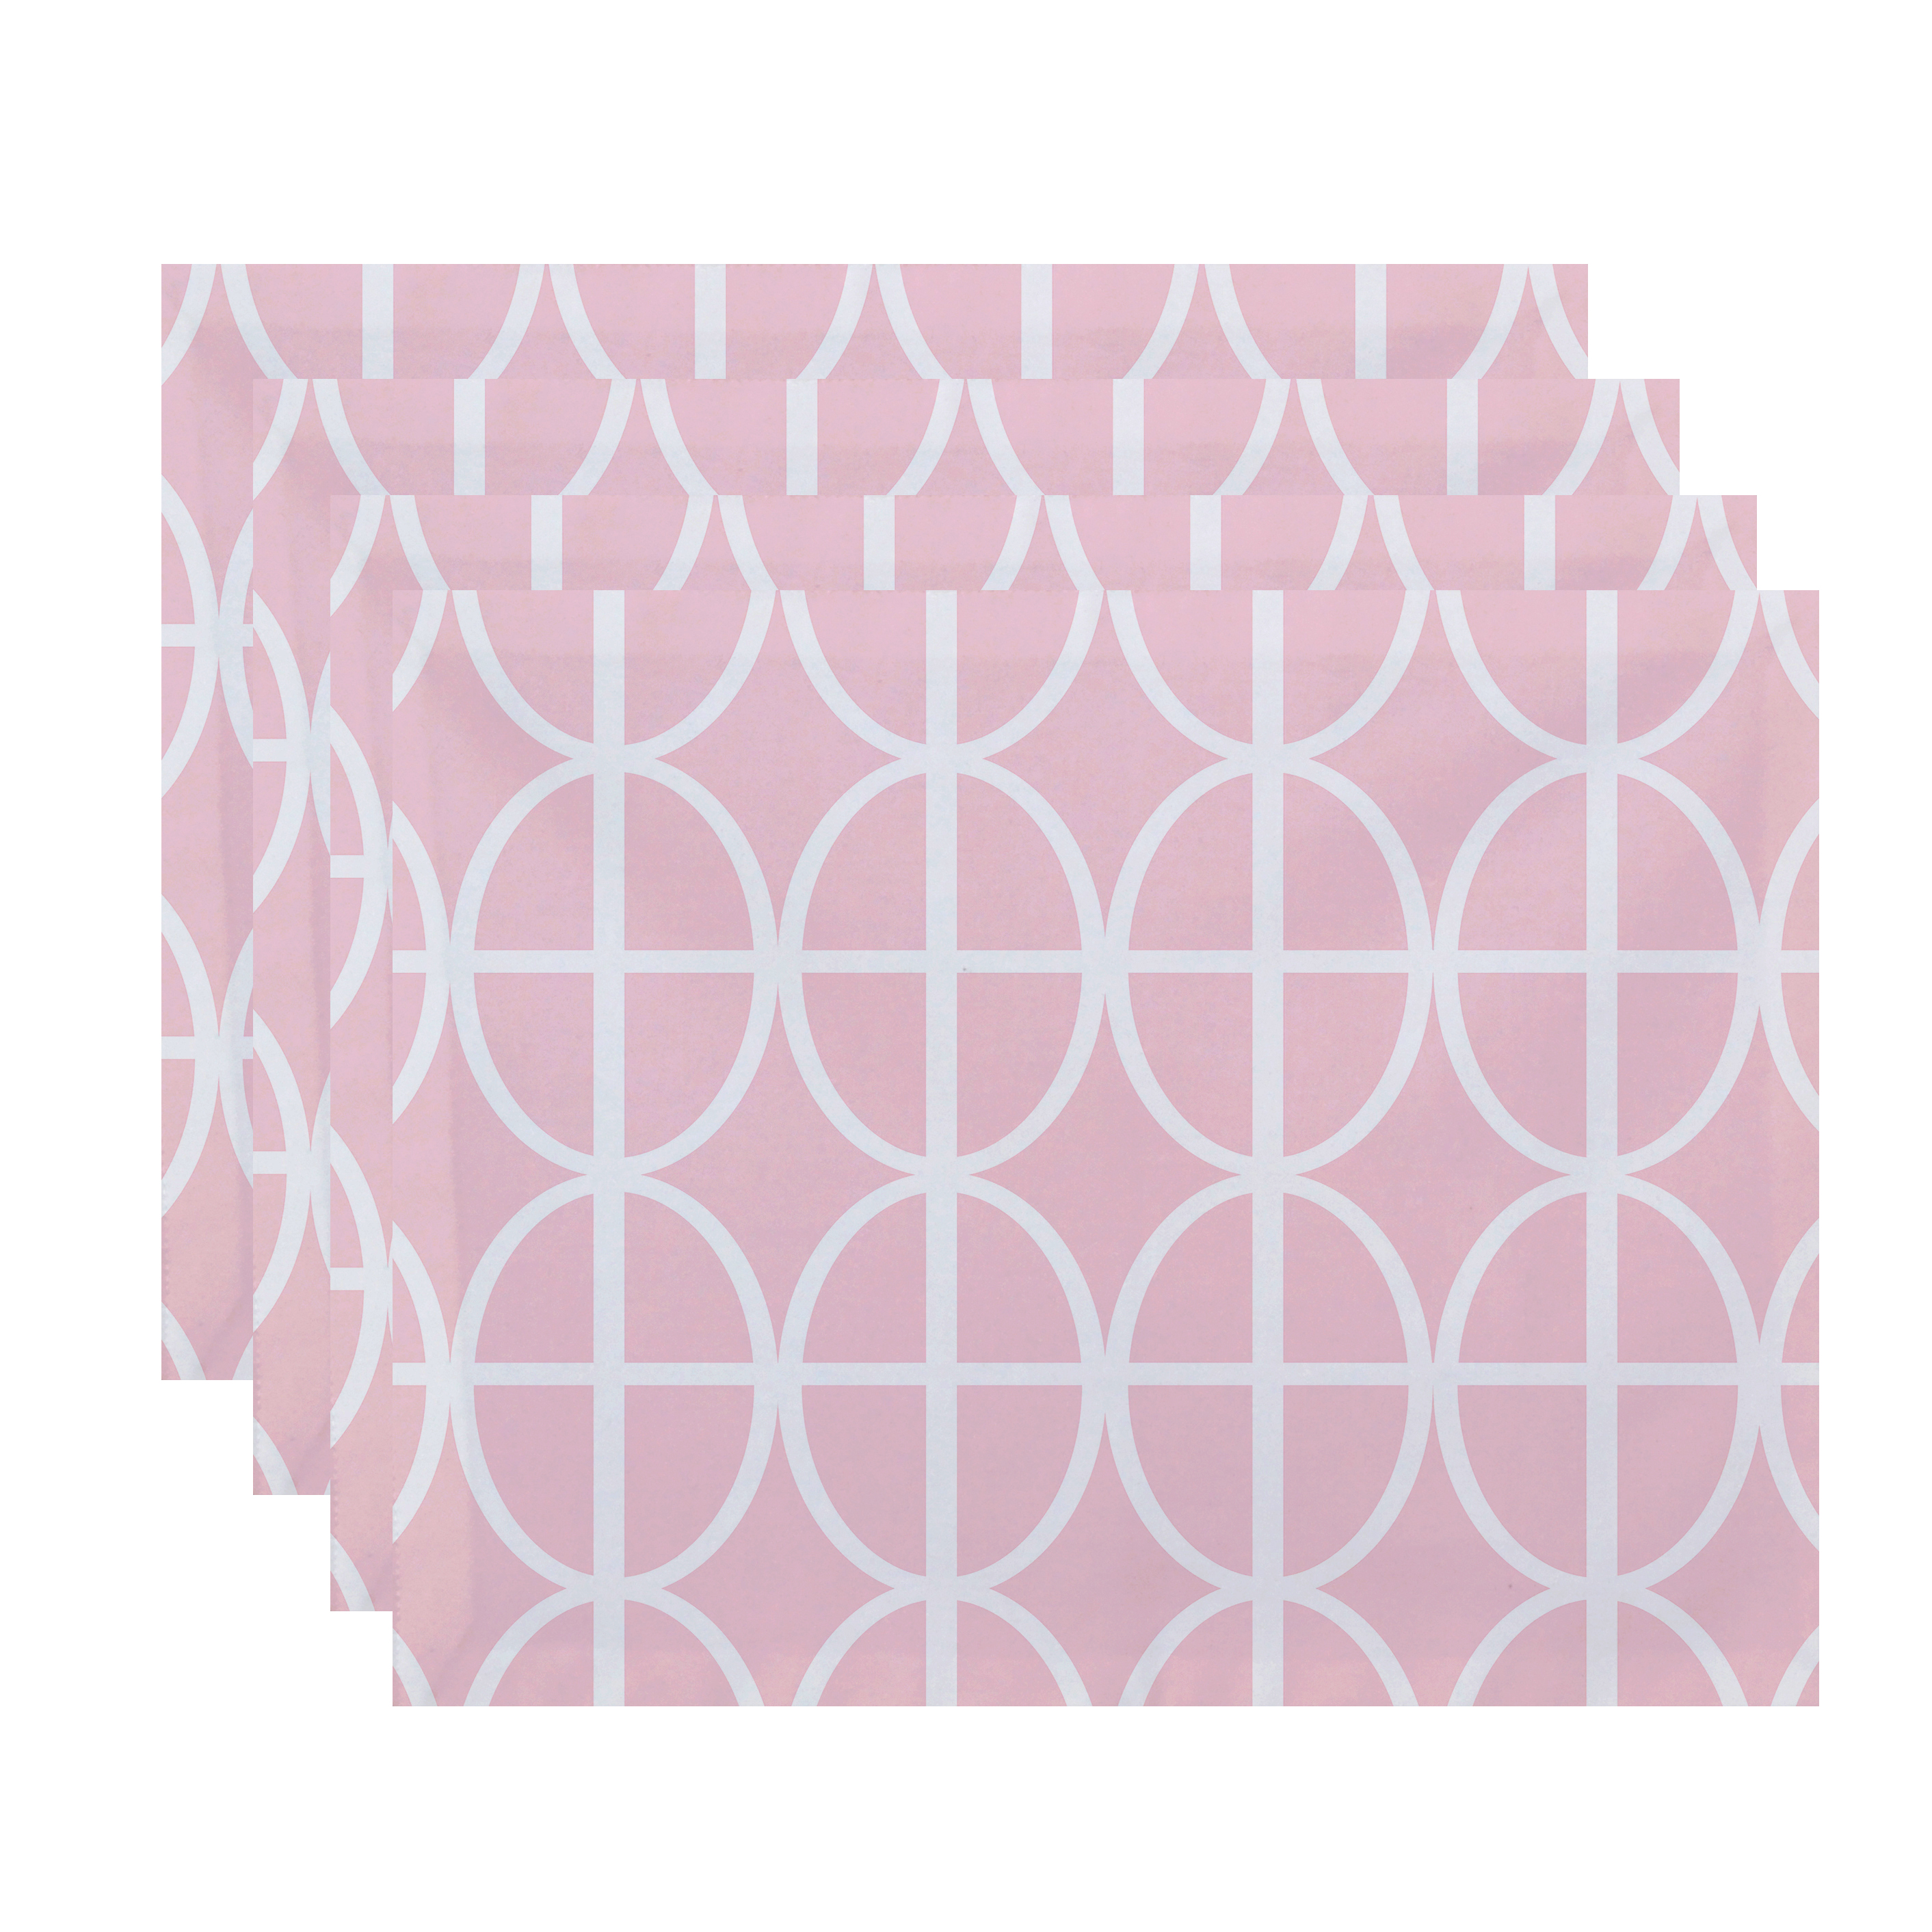 Simply Daisy, 18 x 14 Inch Ovals and Stripes Geometric Print Placemat (set of 4), Pink